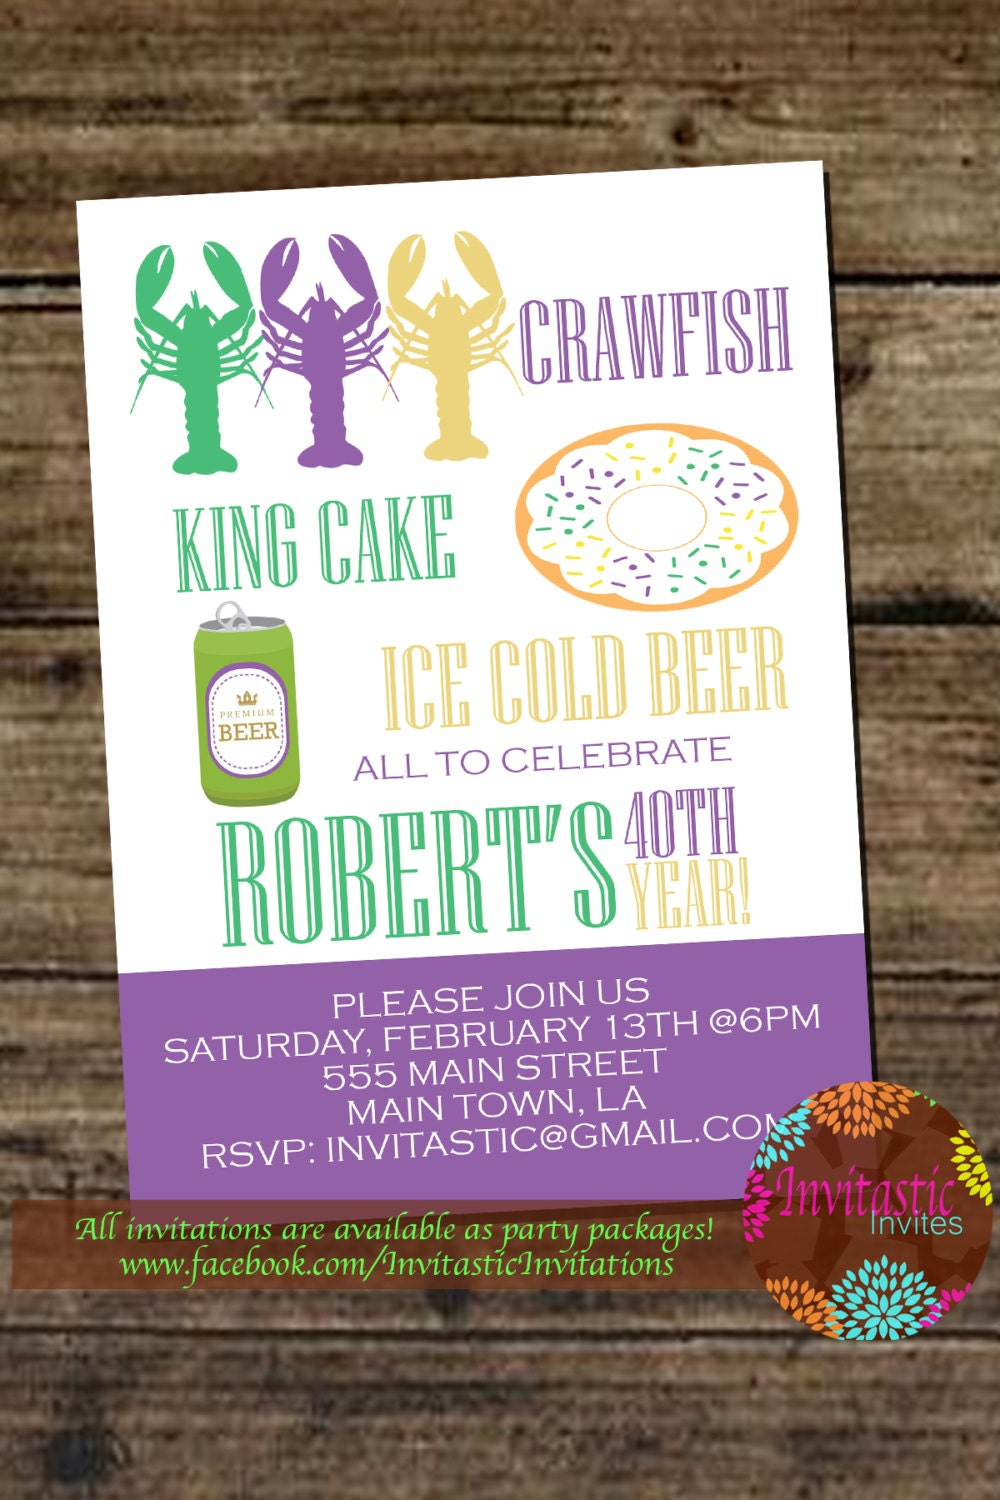 Crawfish Boil Mardi Gras Birthday Party Invitation Crawfish